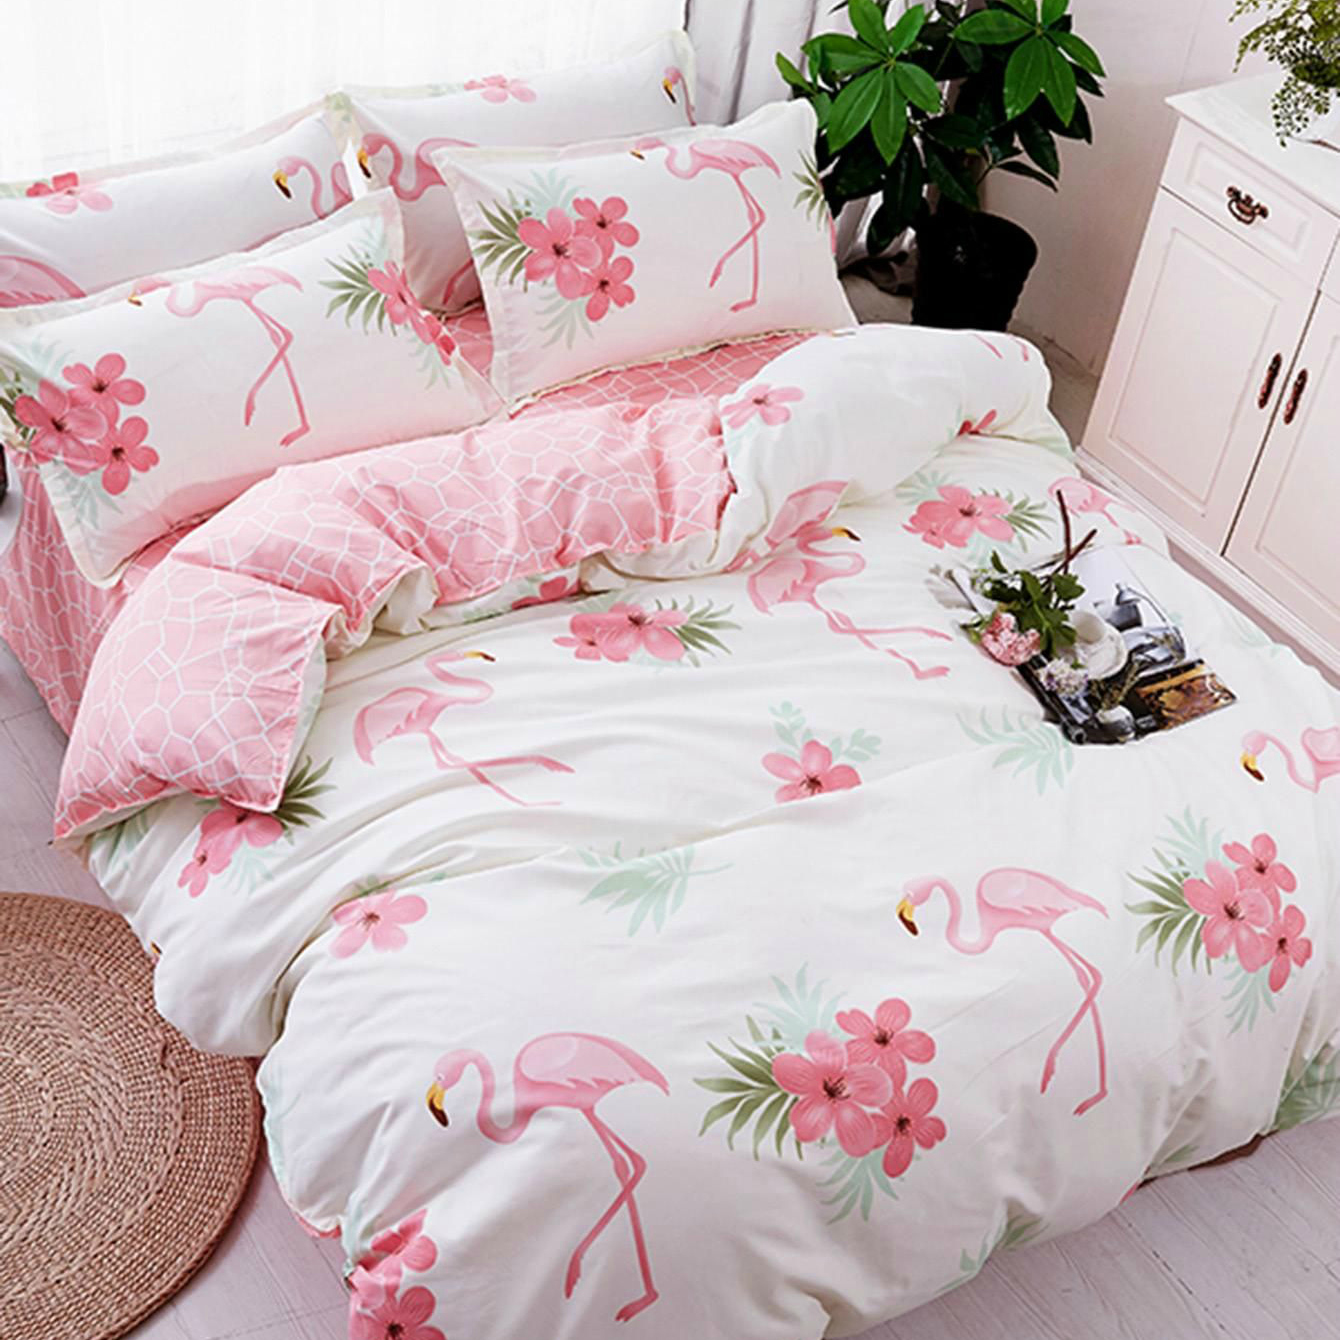 Romwe Flamingo Print Duvet Cover Set